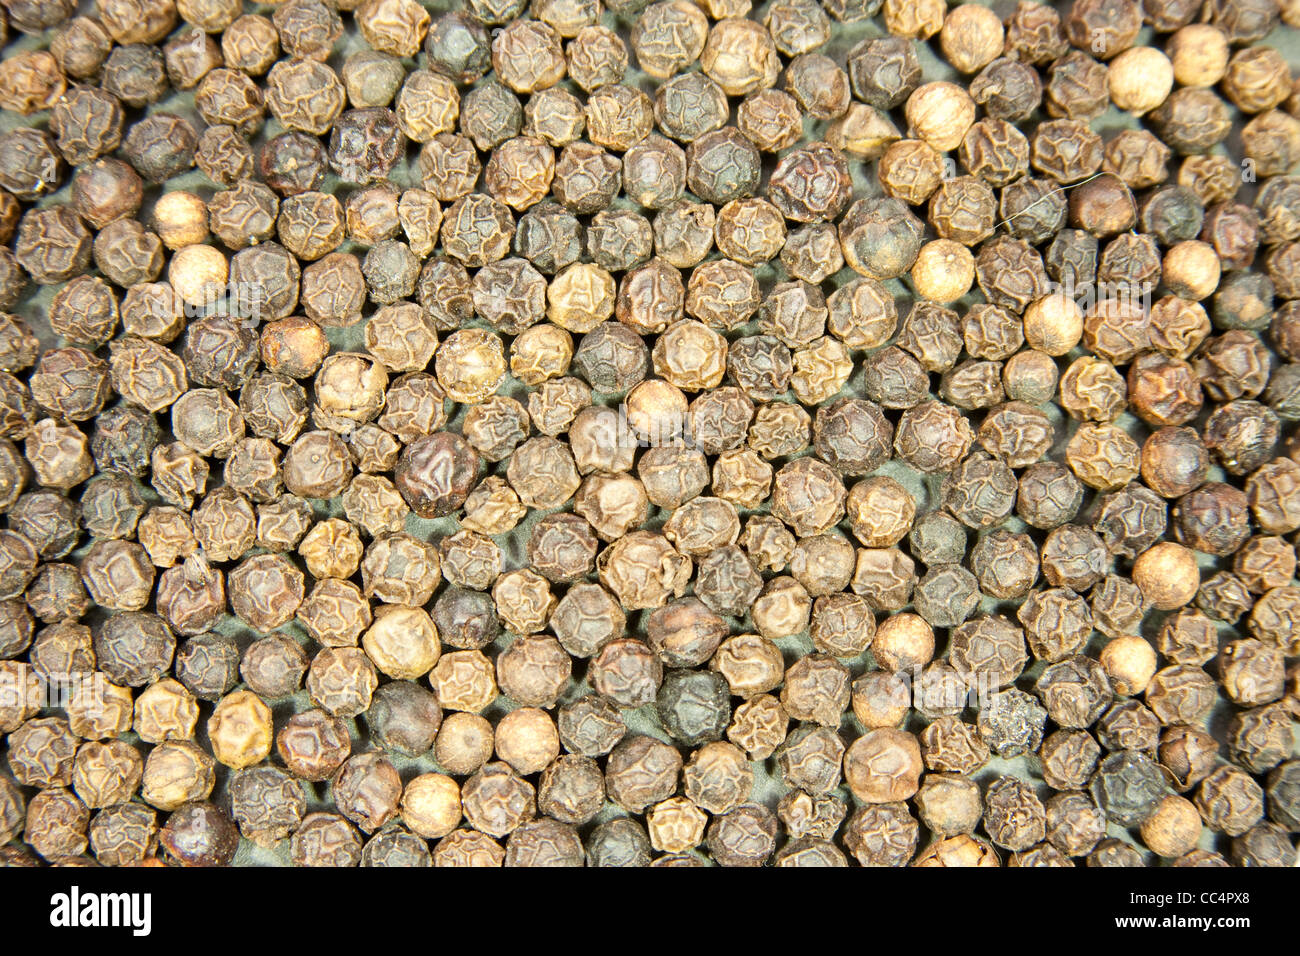 Background of whole peppercorns - Stock Image